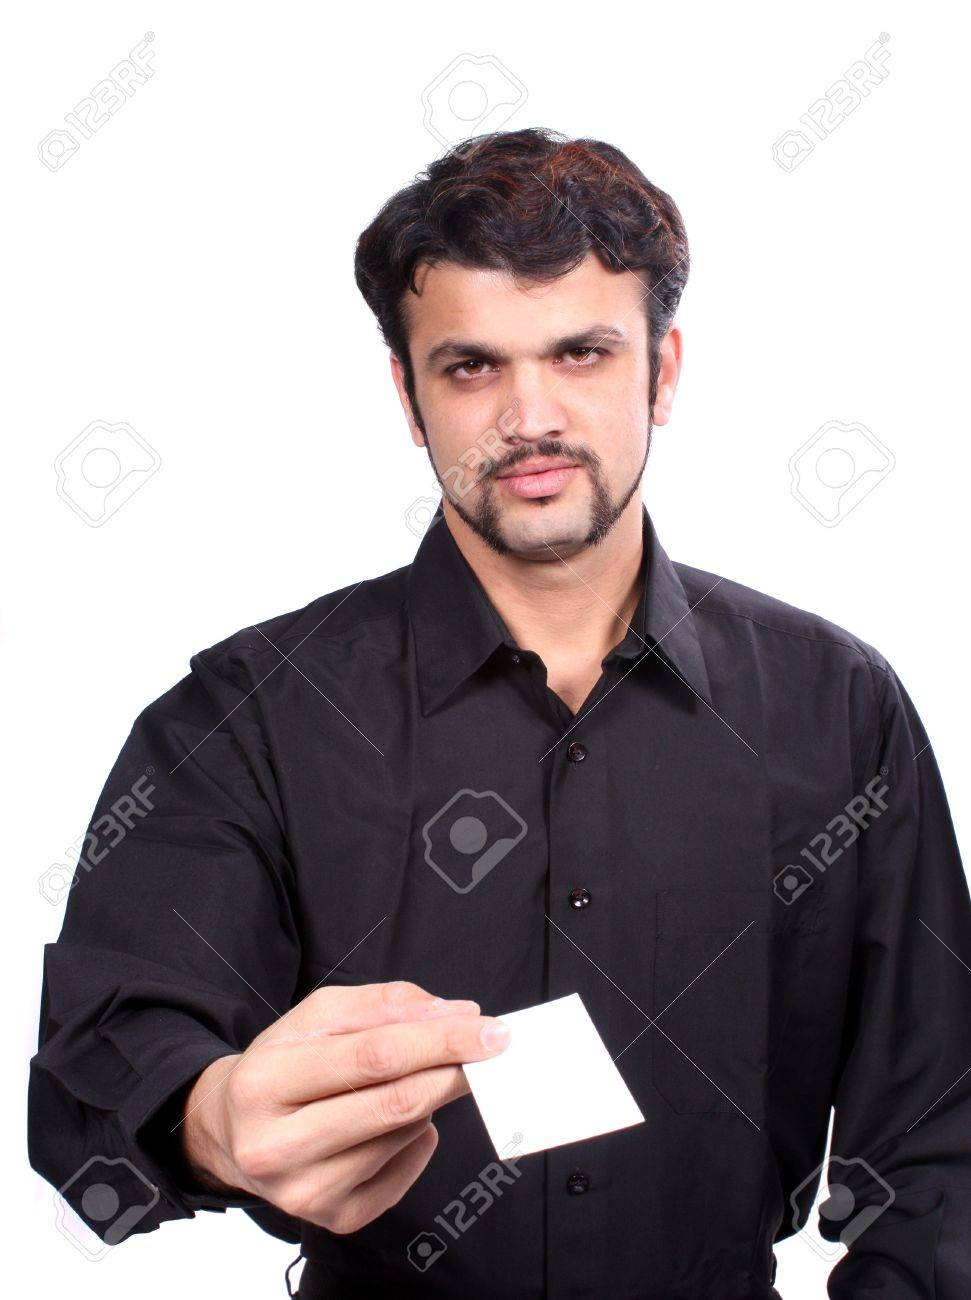 A Young Indian Guy Giving His New Business Card, Focus On The ...